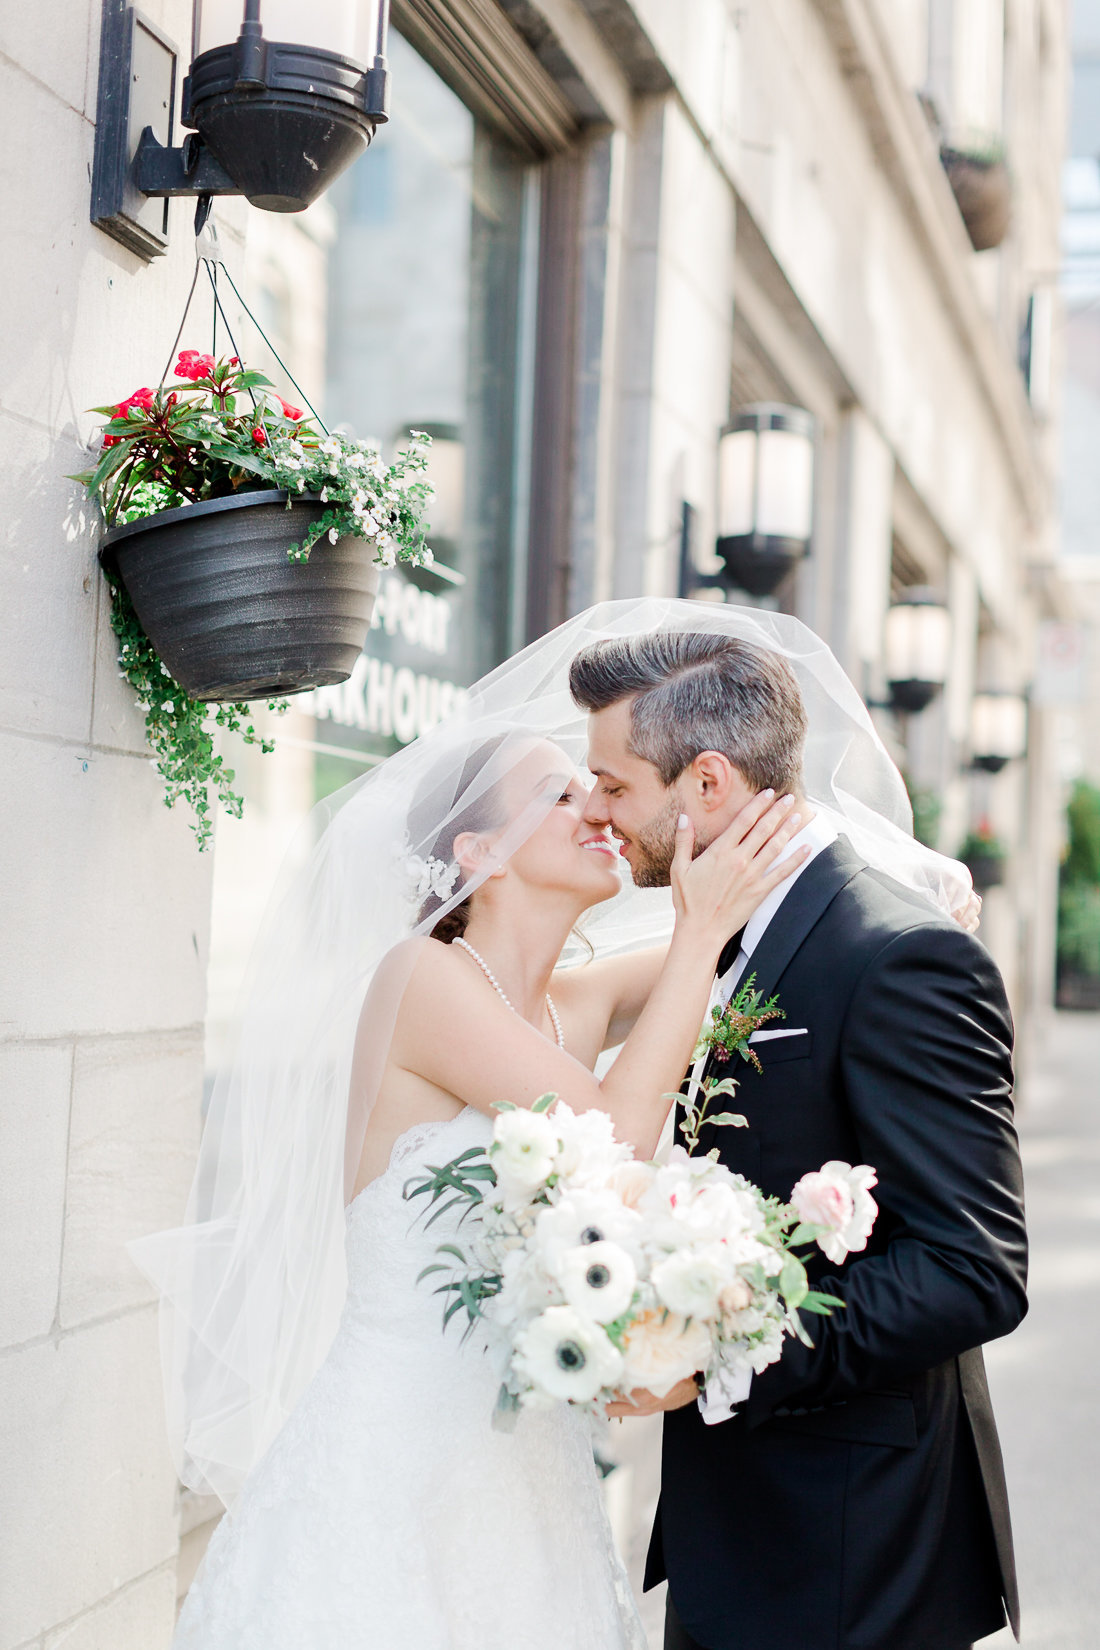 photographe-mariage-auberge-saint-gabriel-lisa-renault-photographie-montreal-wedding-photographer-76